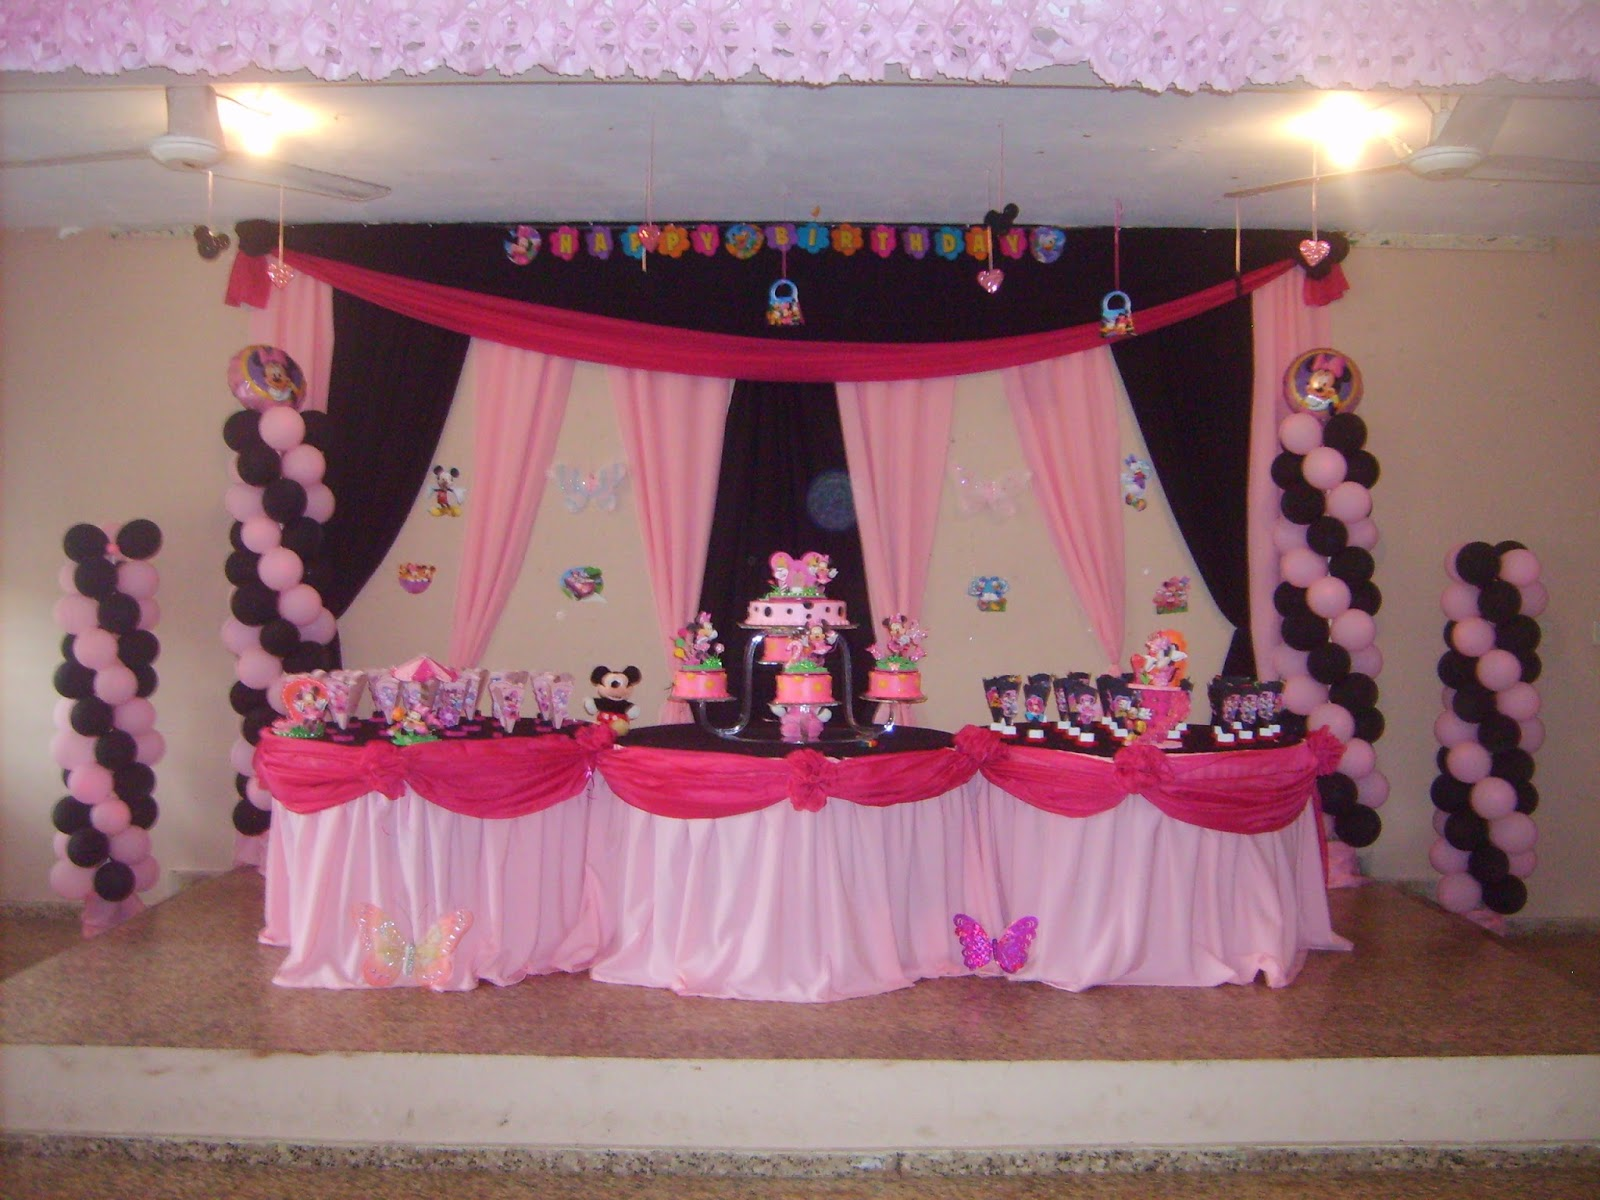 Decoracion Minnie Fucsia ~ MuyAmeno com Fiestas Infantiles Decoradas con Minnie Mouse, parte 2